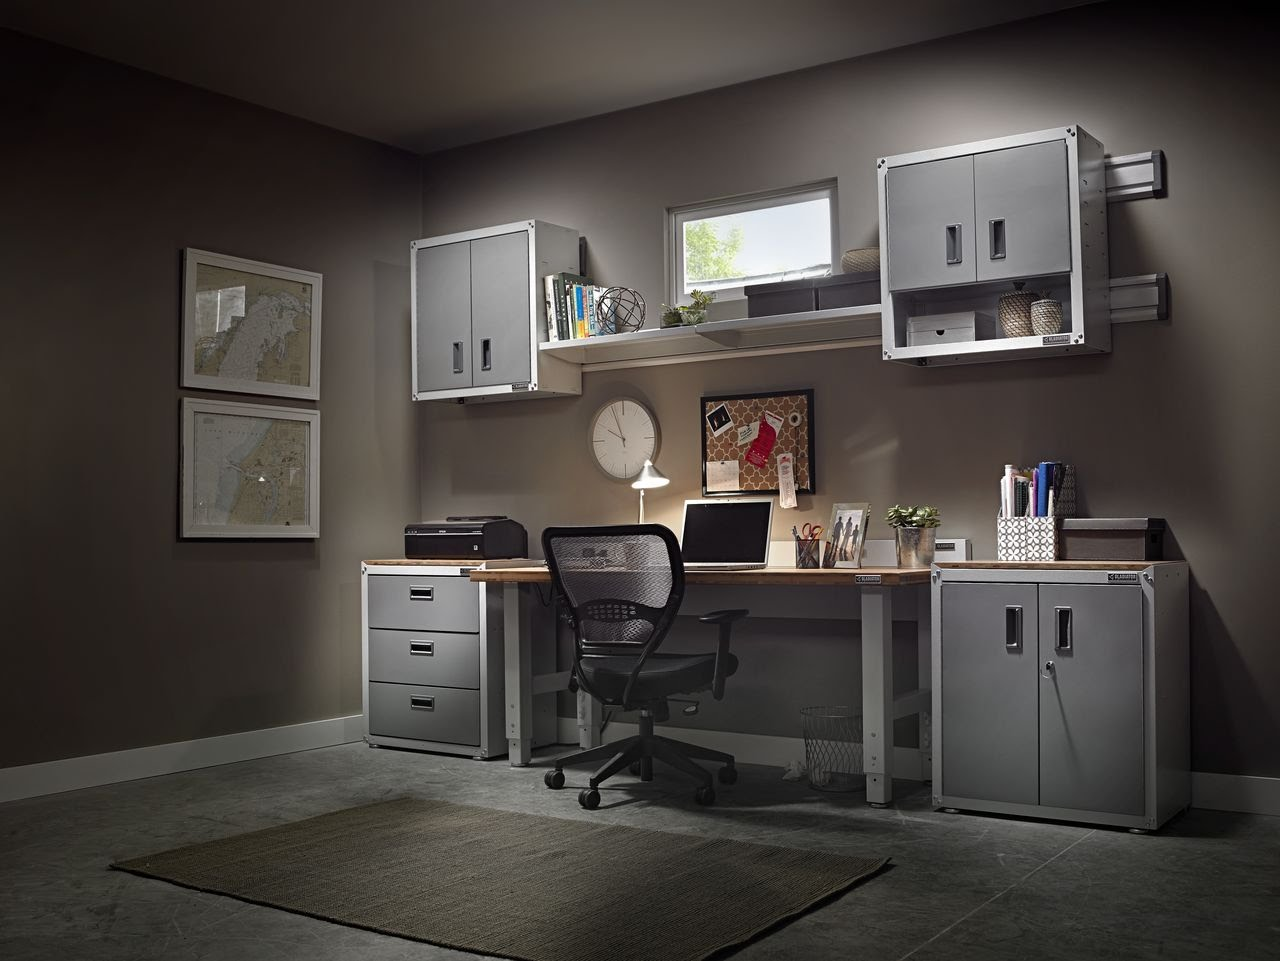 Turn Your Garage into an Office